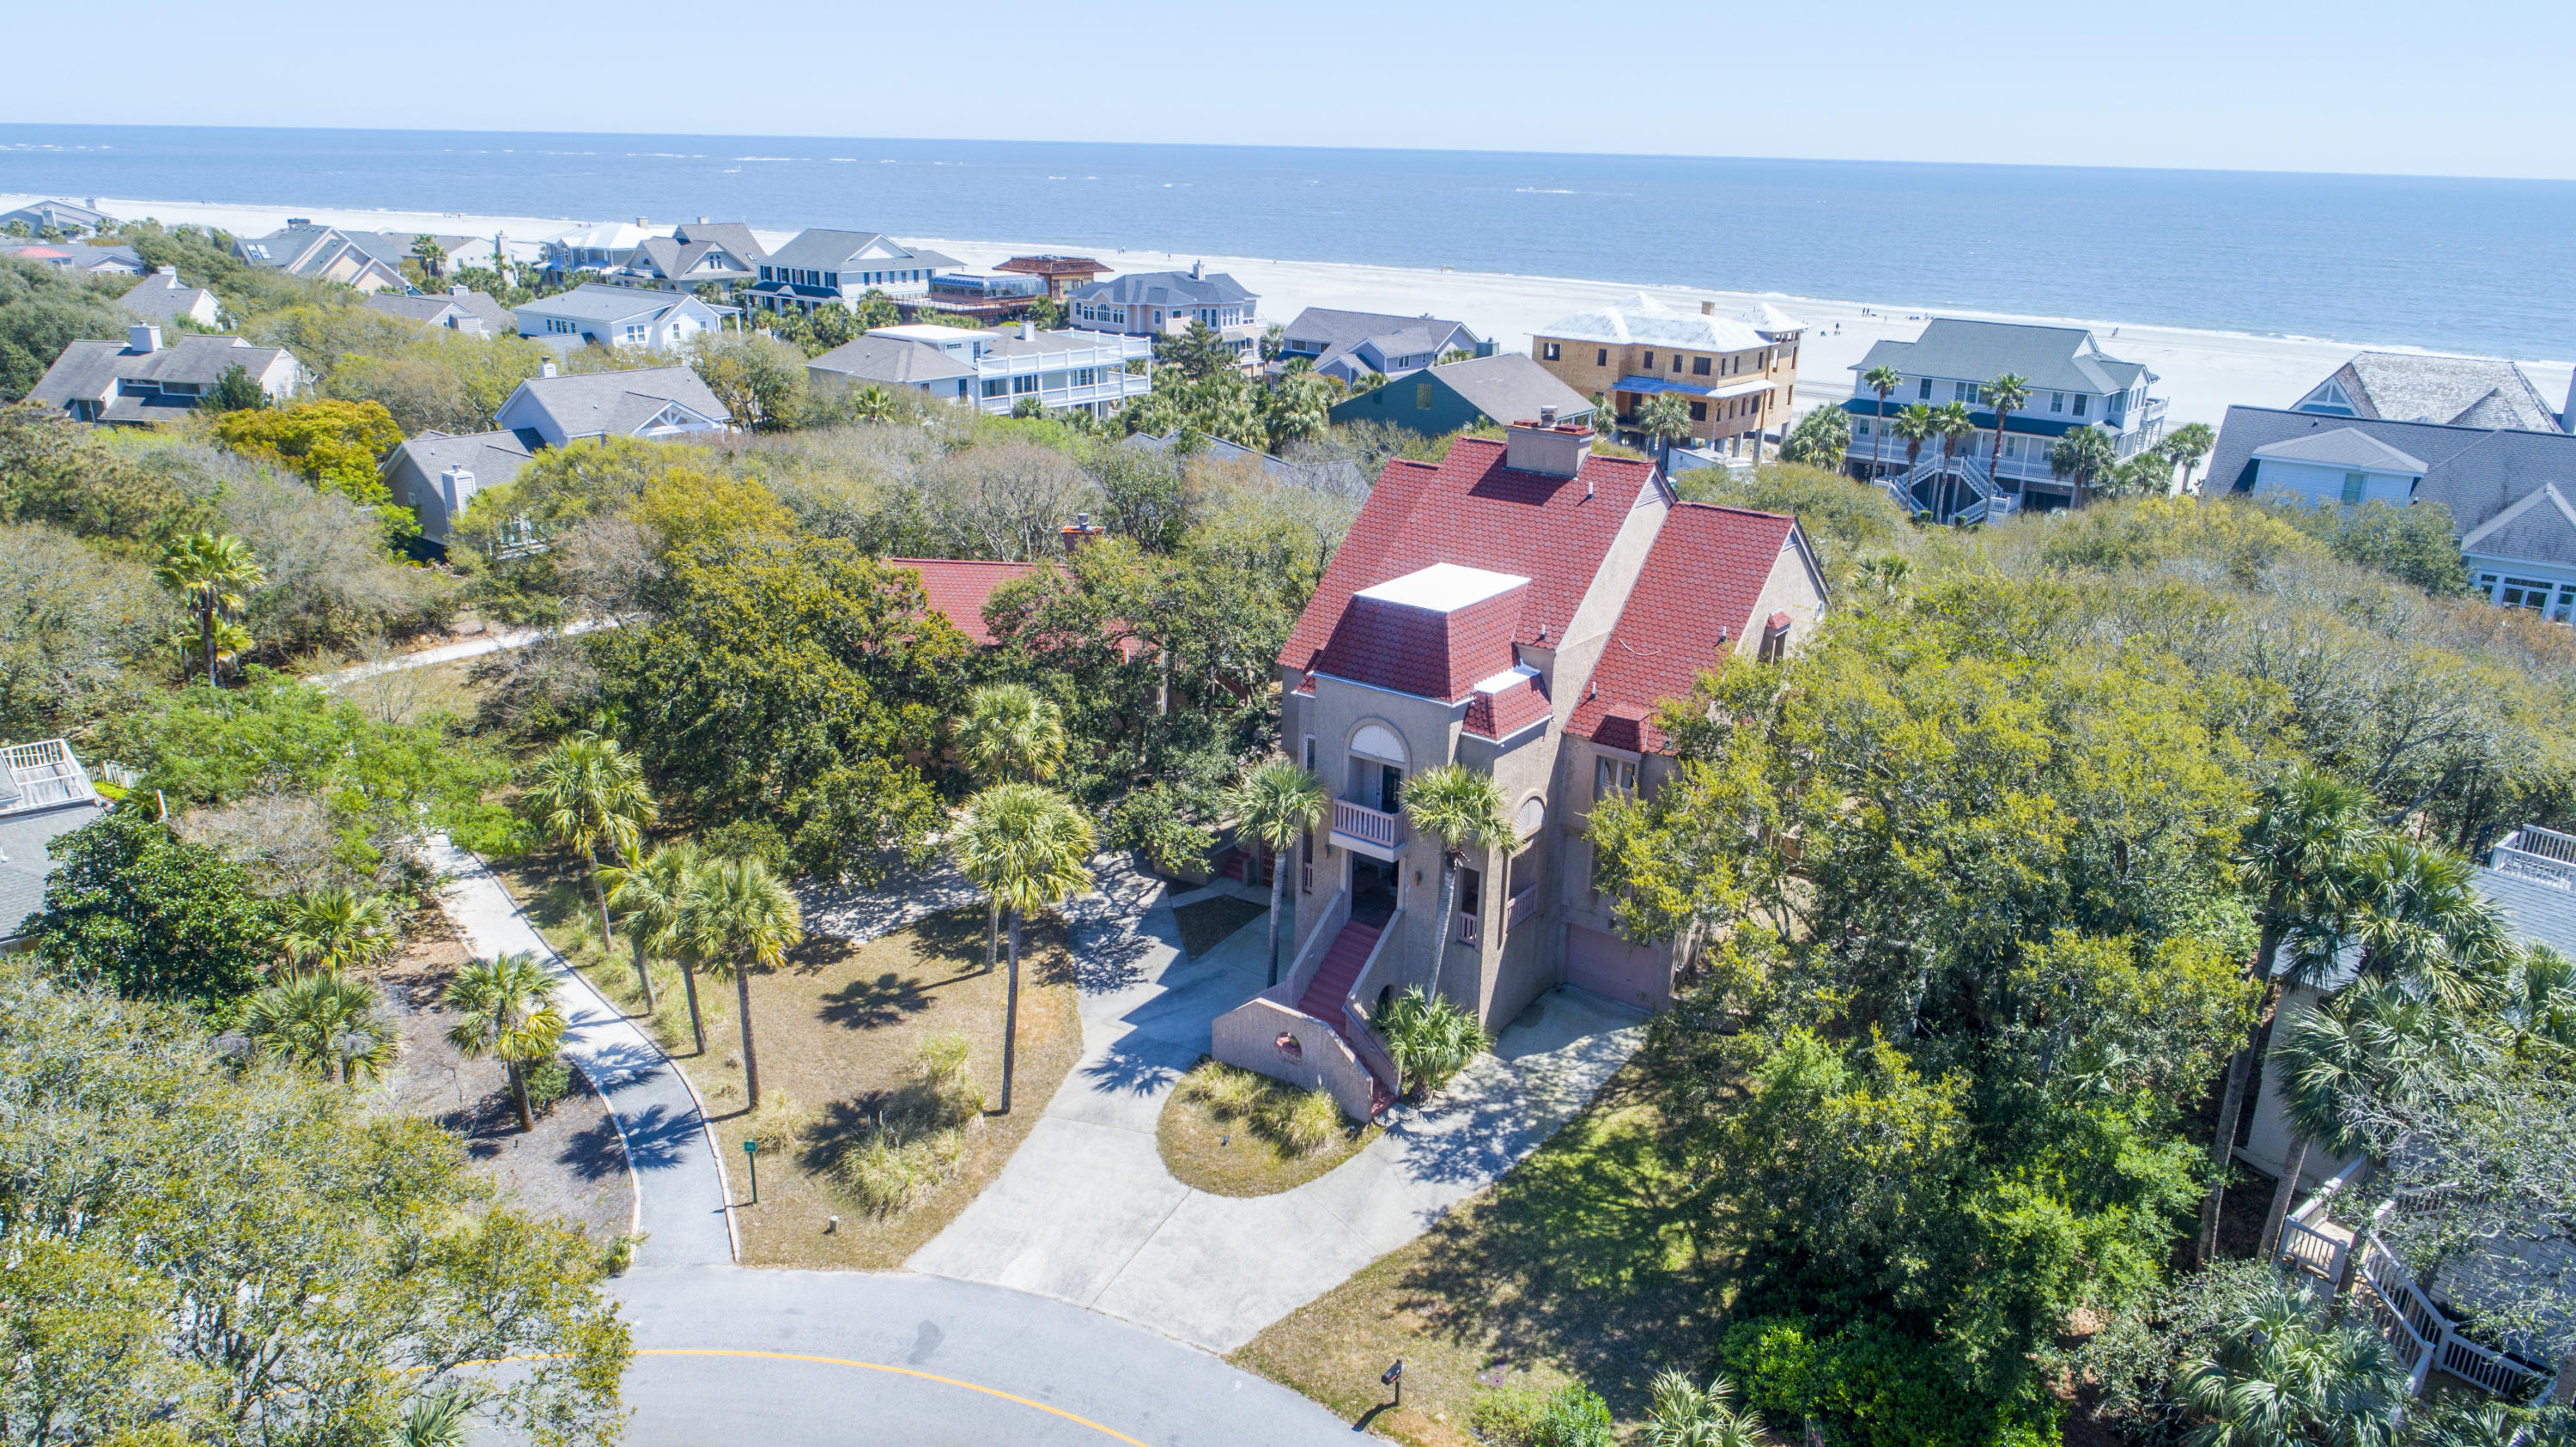 17 Beachwood West Isle of Palms $2,200,000.00